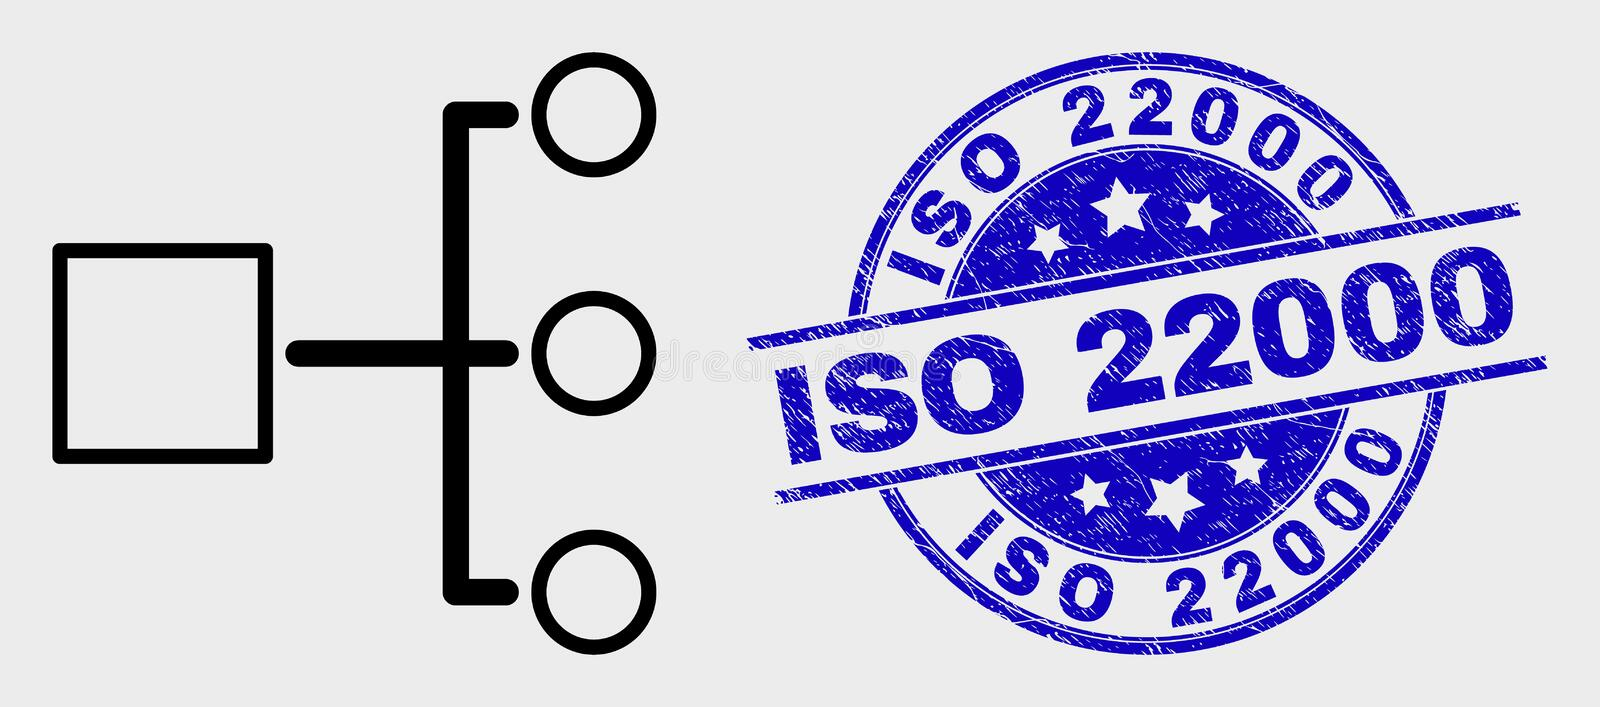 Vector Line Hierarchy Icon and Scratched ISO 22000 Stamp. Vector contour hierarchy icon and ISO 22000 seal. Blue round scratched seal stamp with ISO 22000 text vector illustration